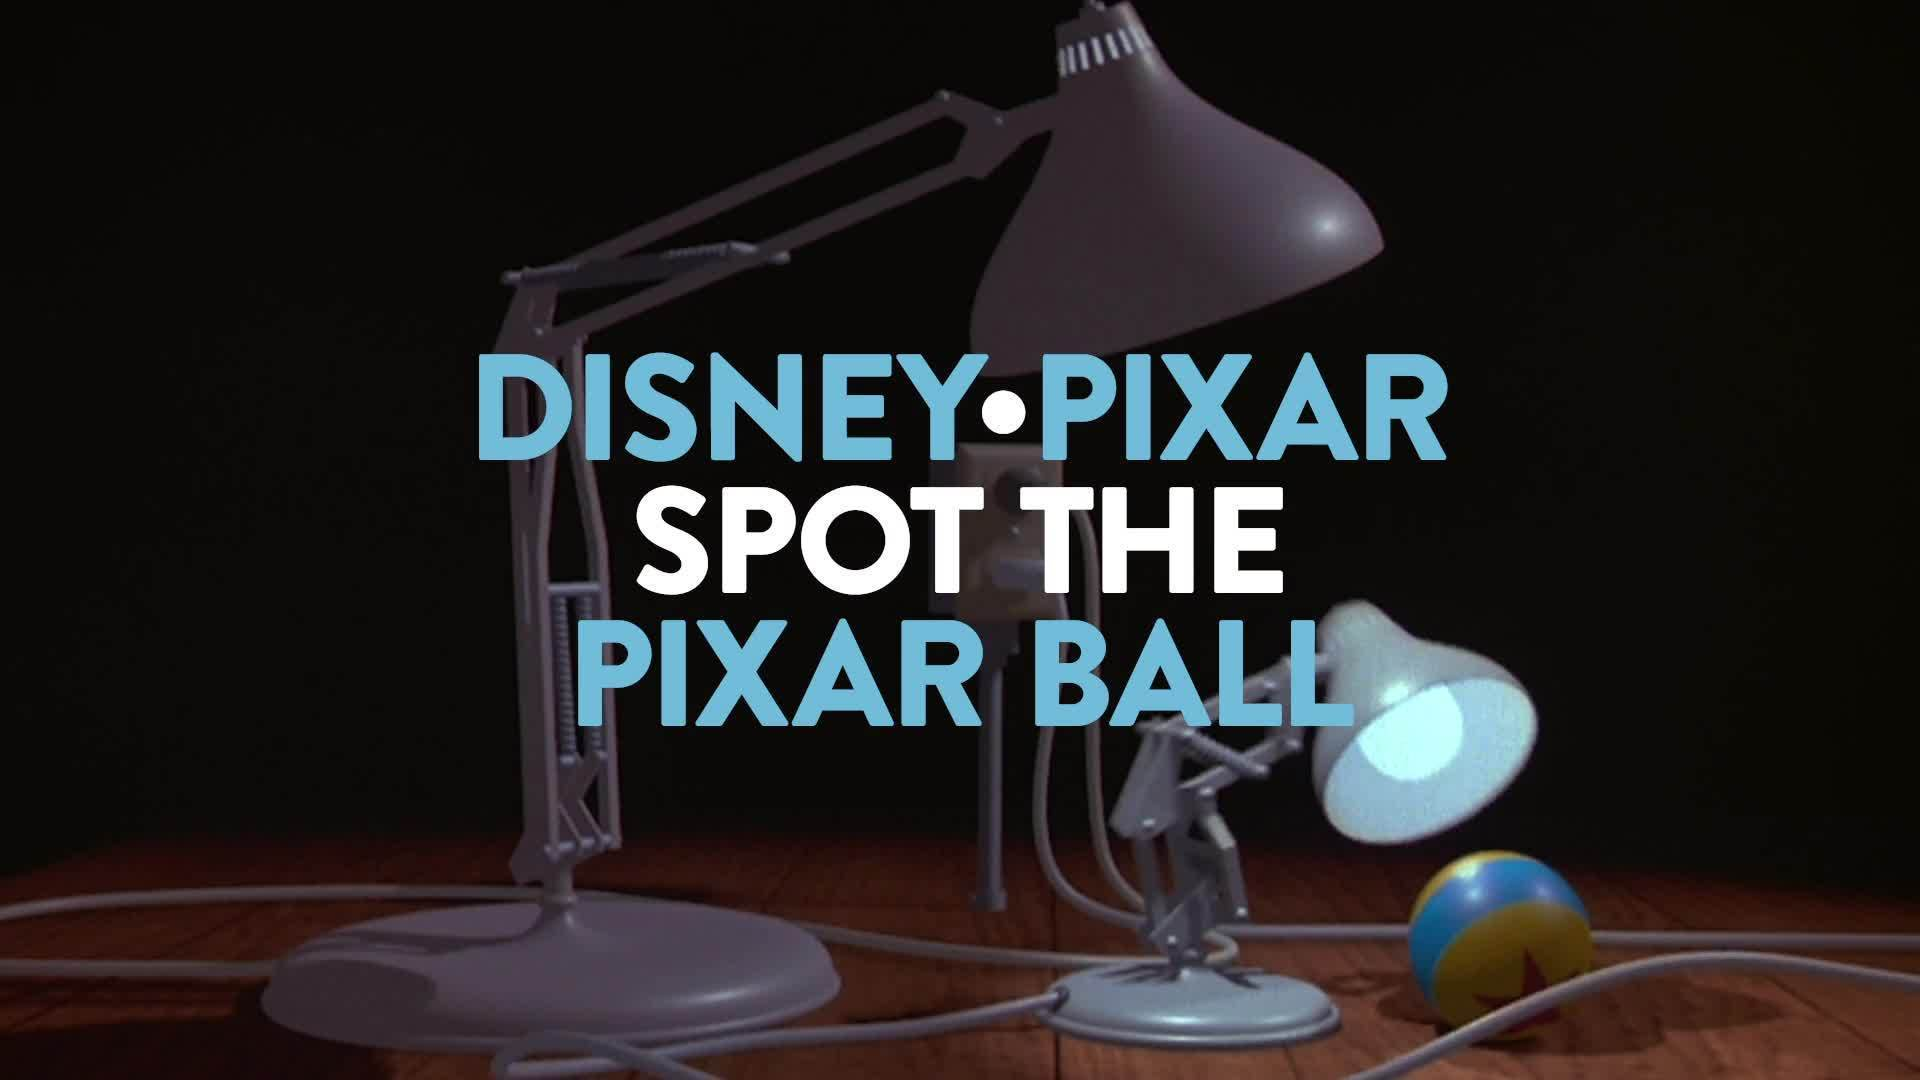 Pixar Ball Easter Eggs | Disney•Pixar